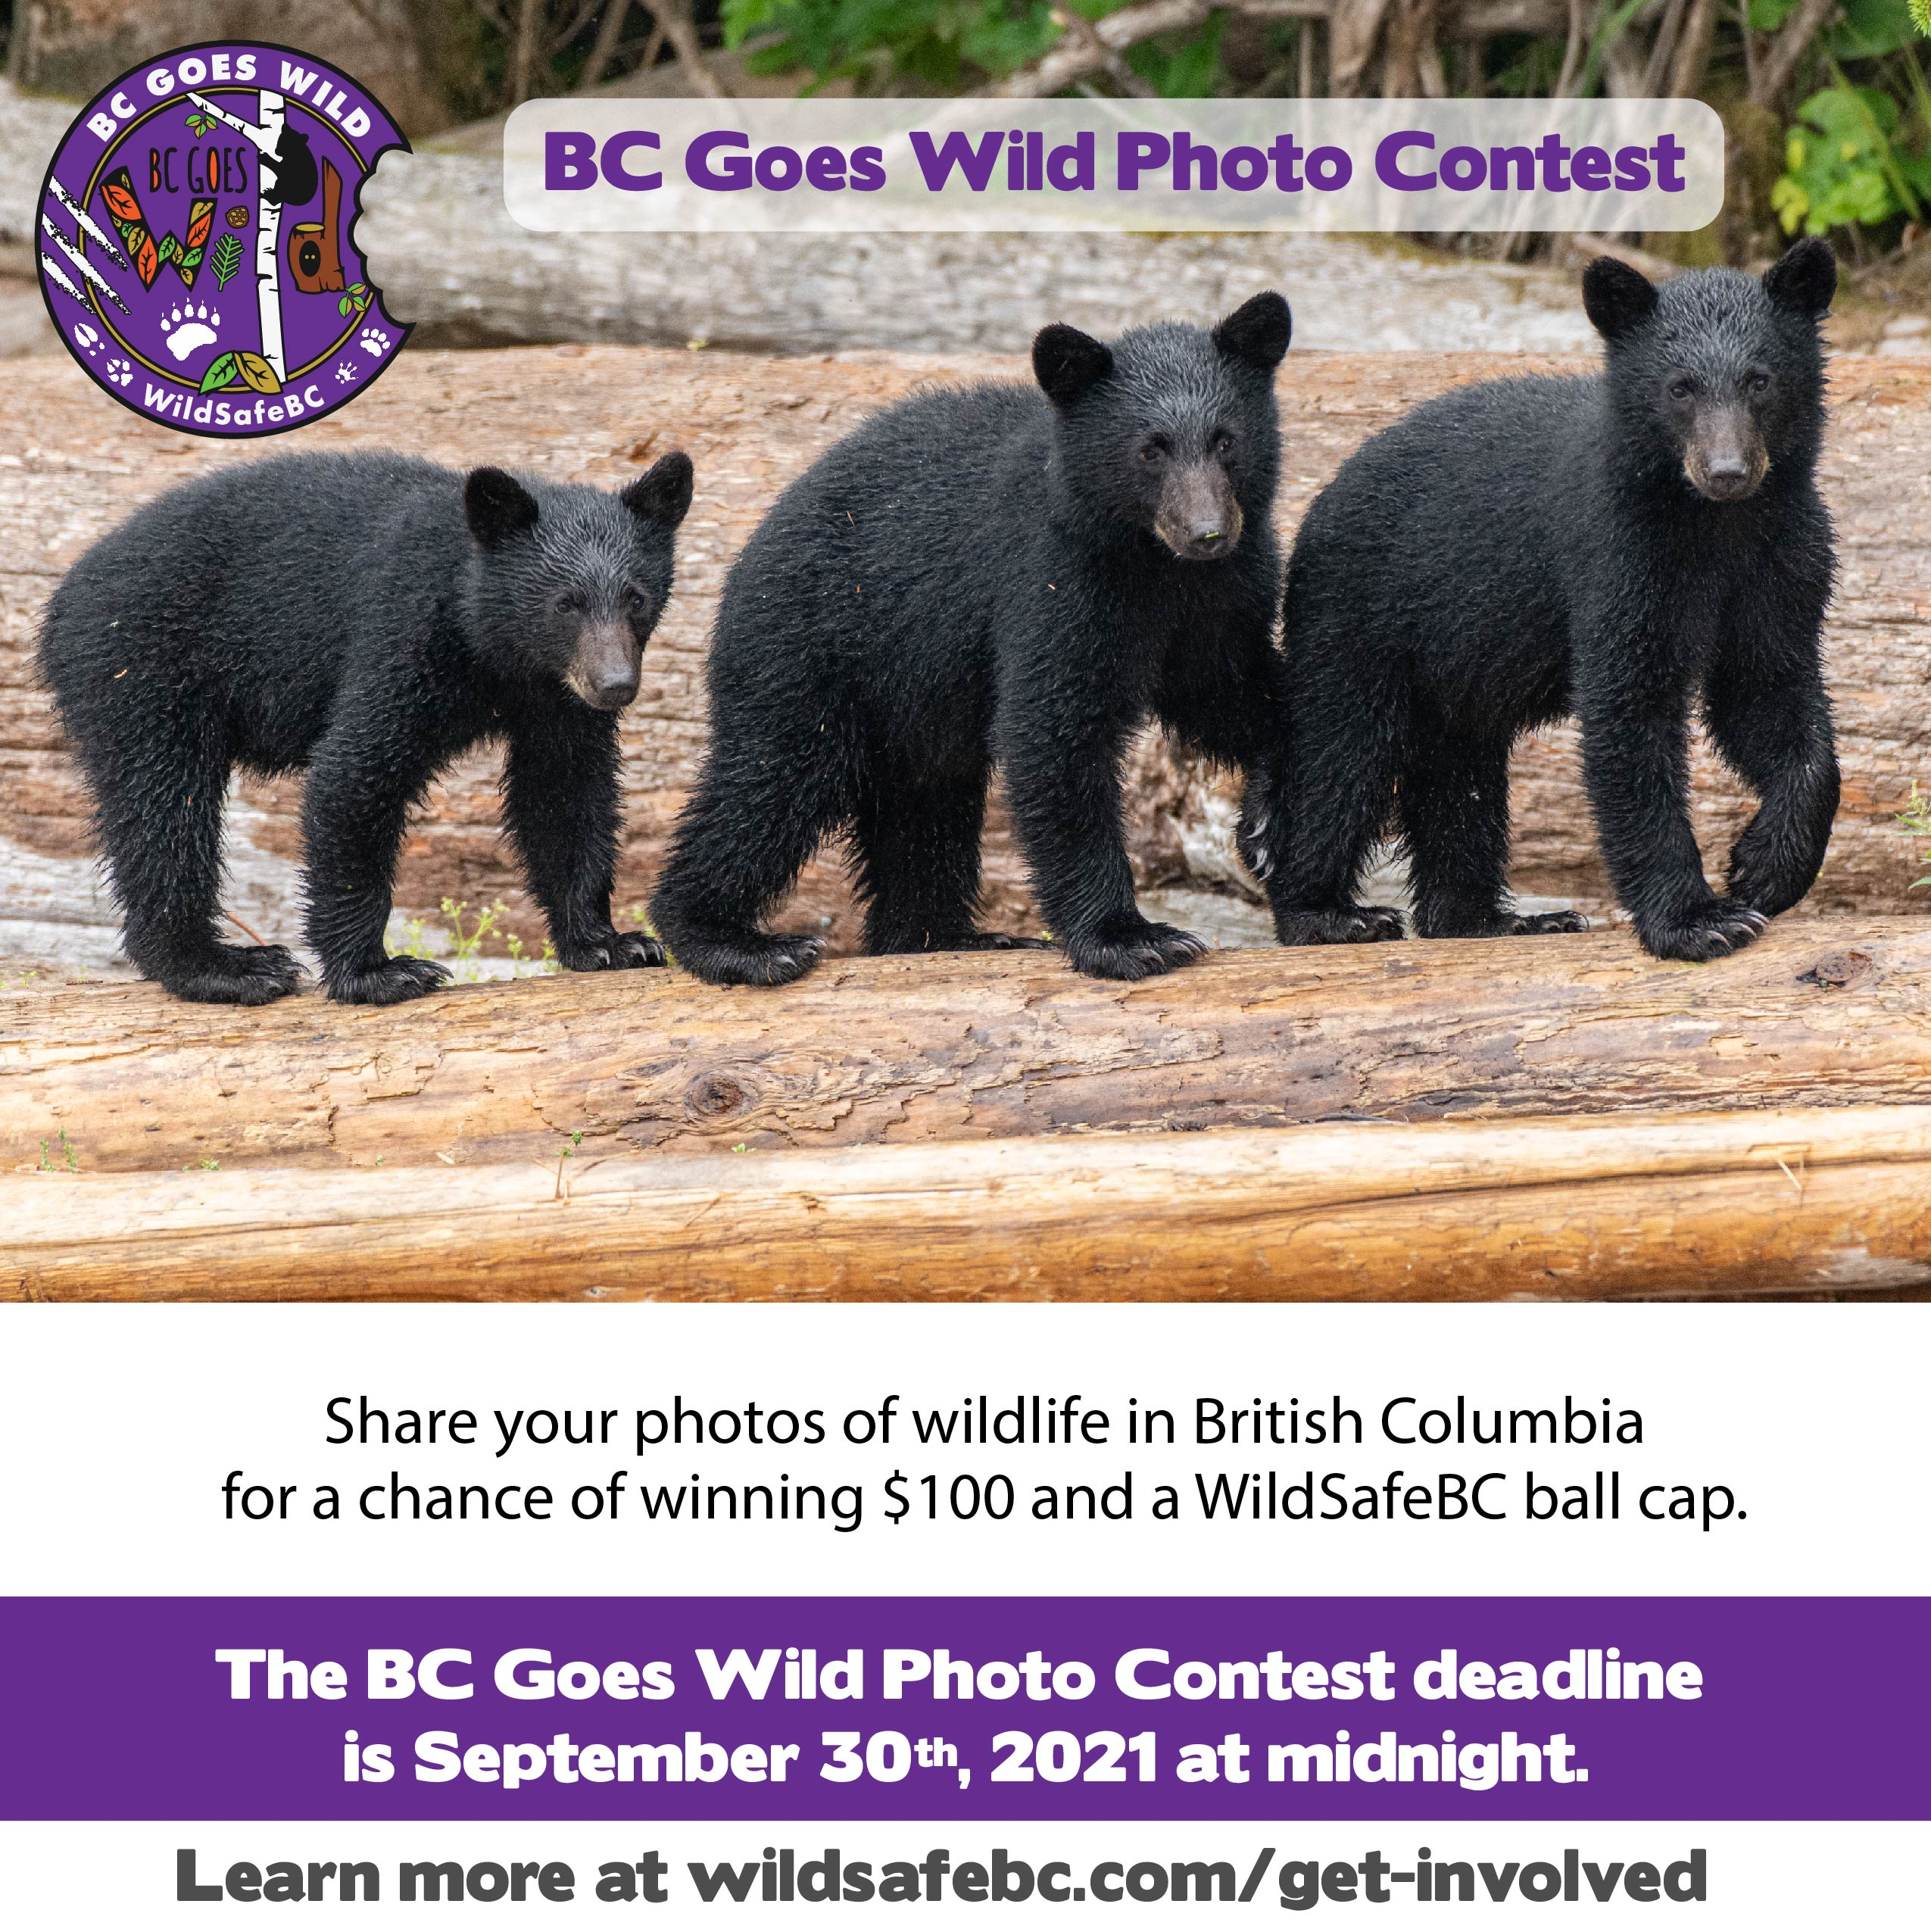 BCGW 2021 Photo Contest with 3 black bears-01